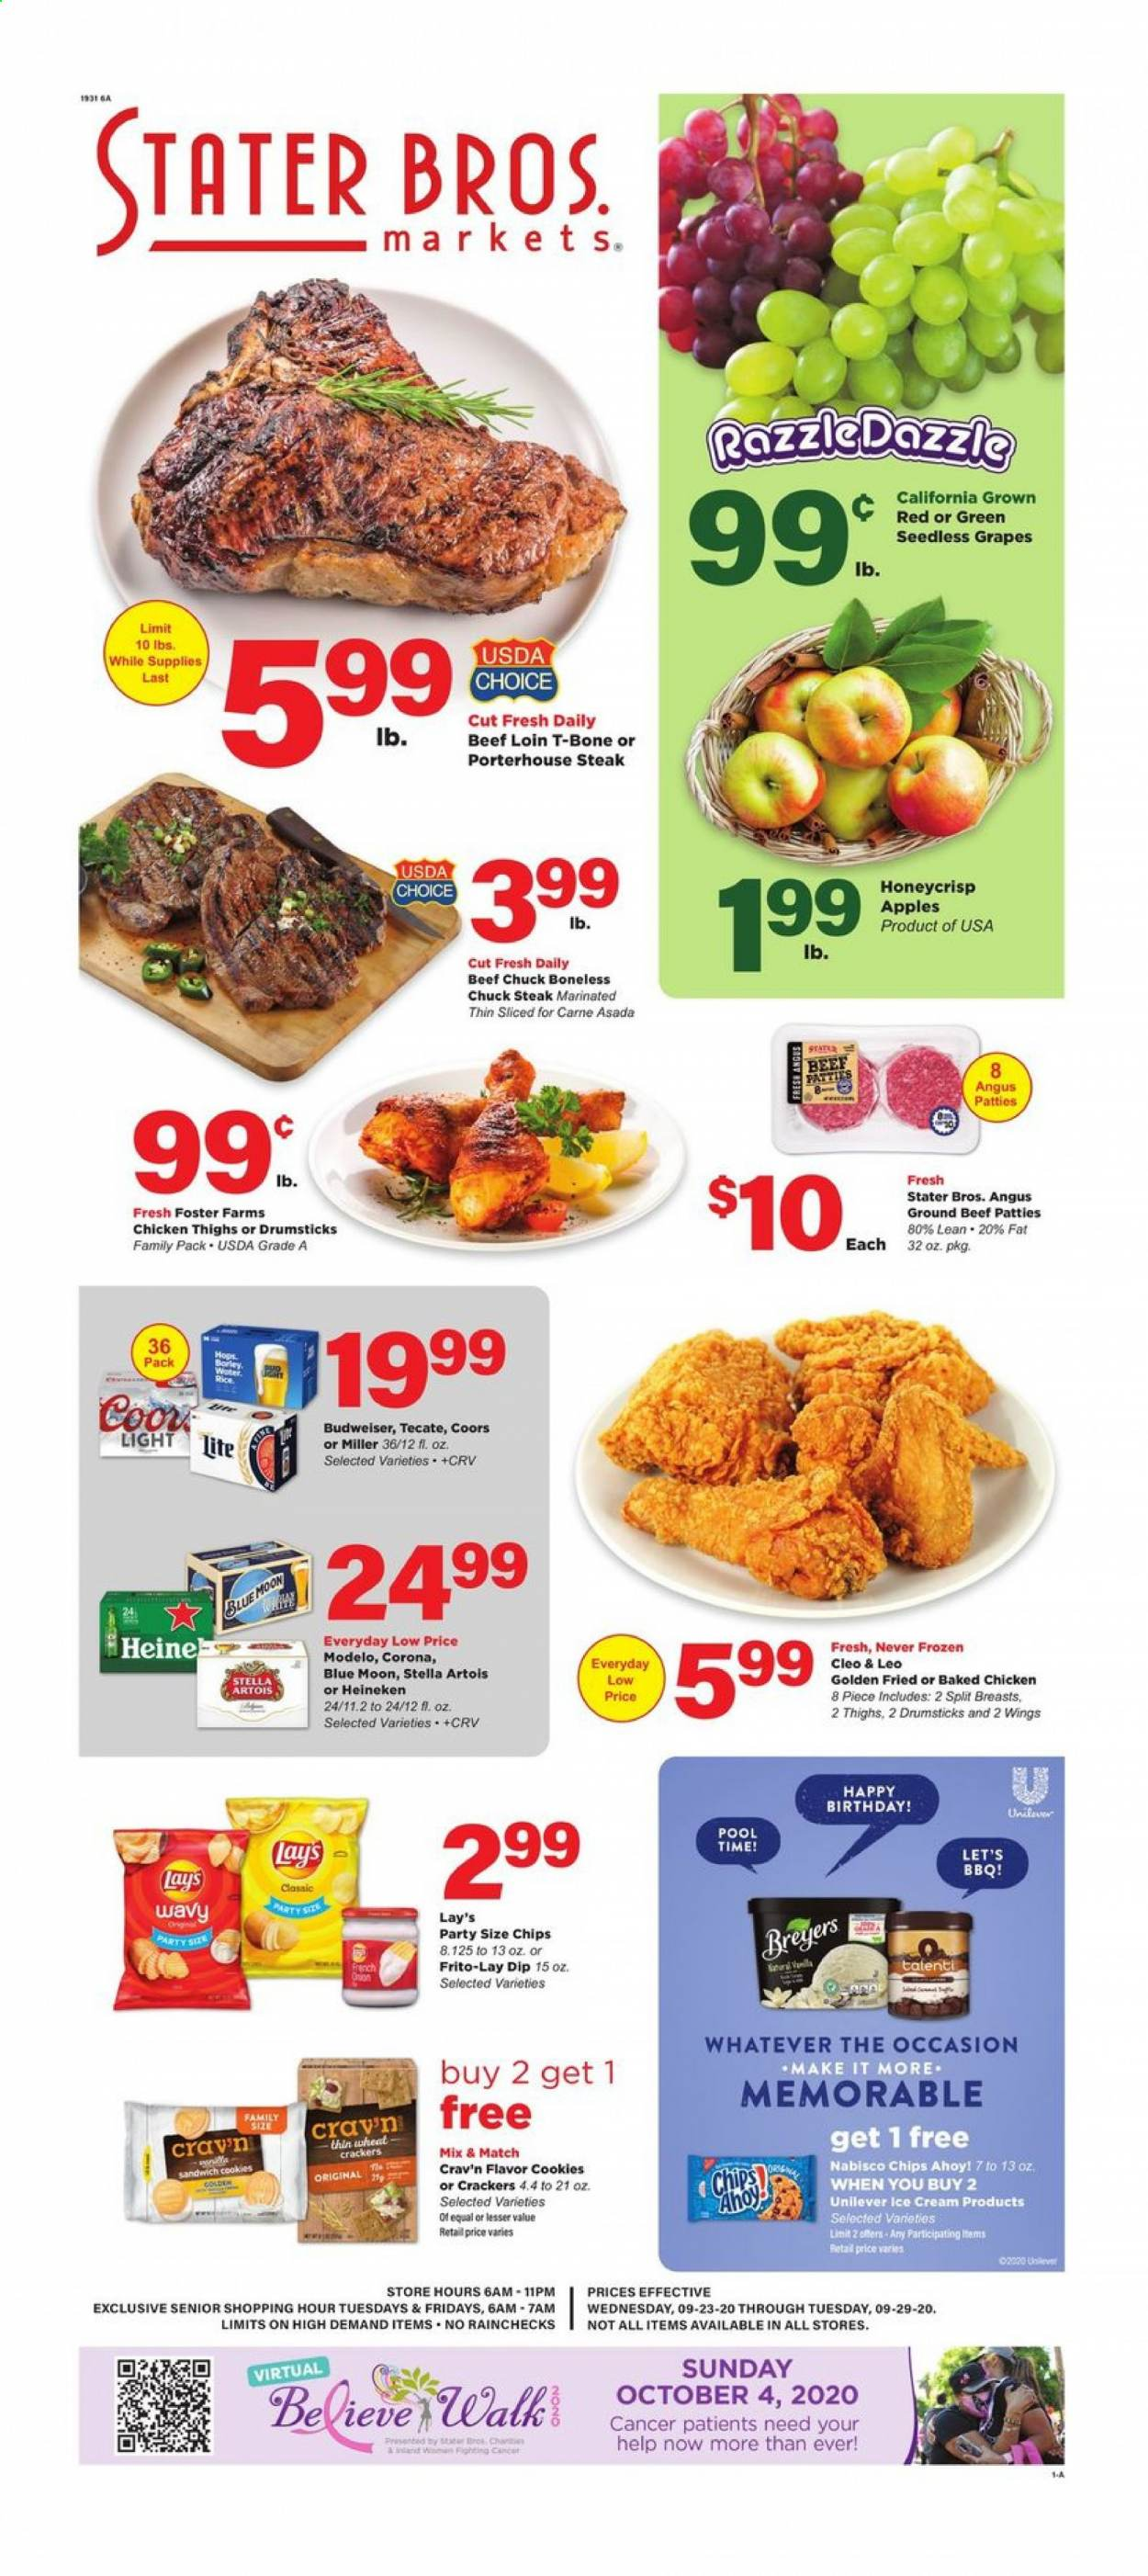 Stater Bros. Flyer - 09.23.2020 - 09.29.2020 - Sales products - Budweiser, Stella Artois, Coors, Corona, Blue Moon, onion, apples, grapes, seedless grapes, sandwich, ice cream, cookies, sandwich cookies, cracker, crackers, chips, Lay's, rice, chicken, chicken thighs, beef meat, steak, ground beef, Frozen. Page 1.